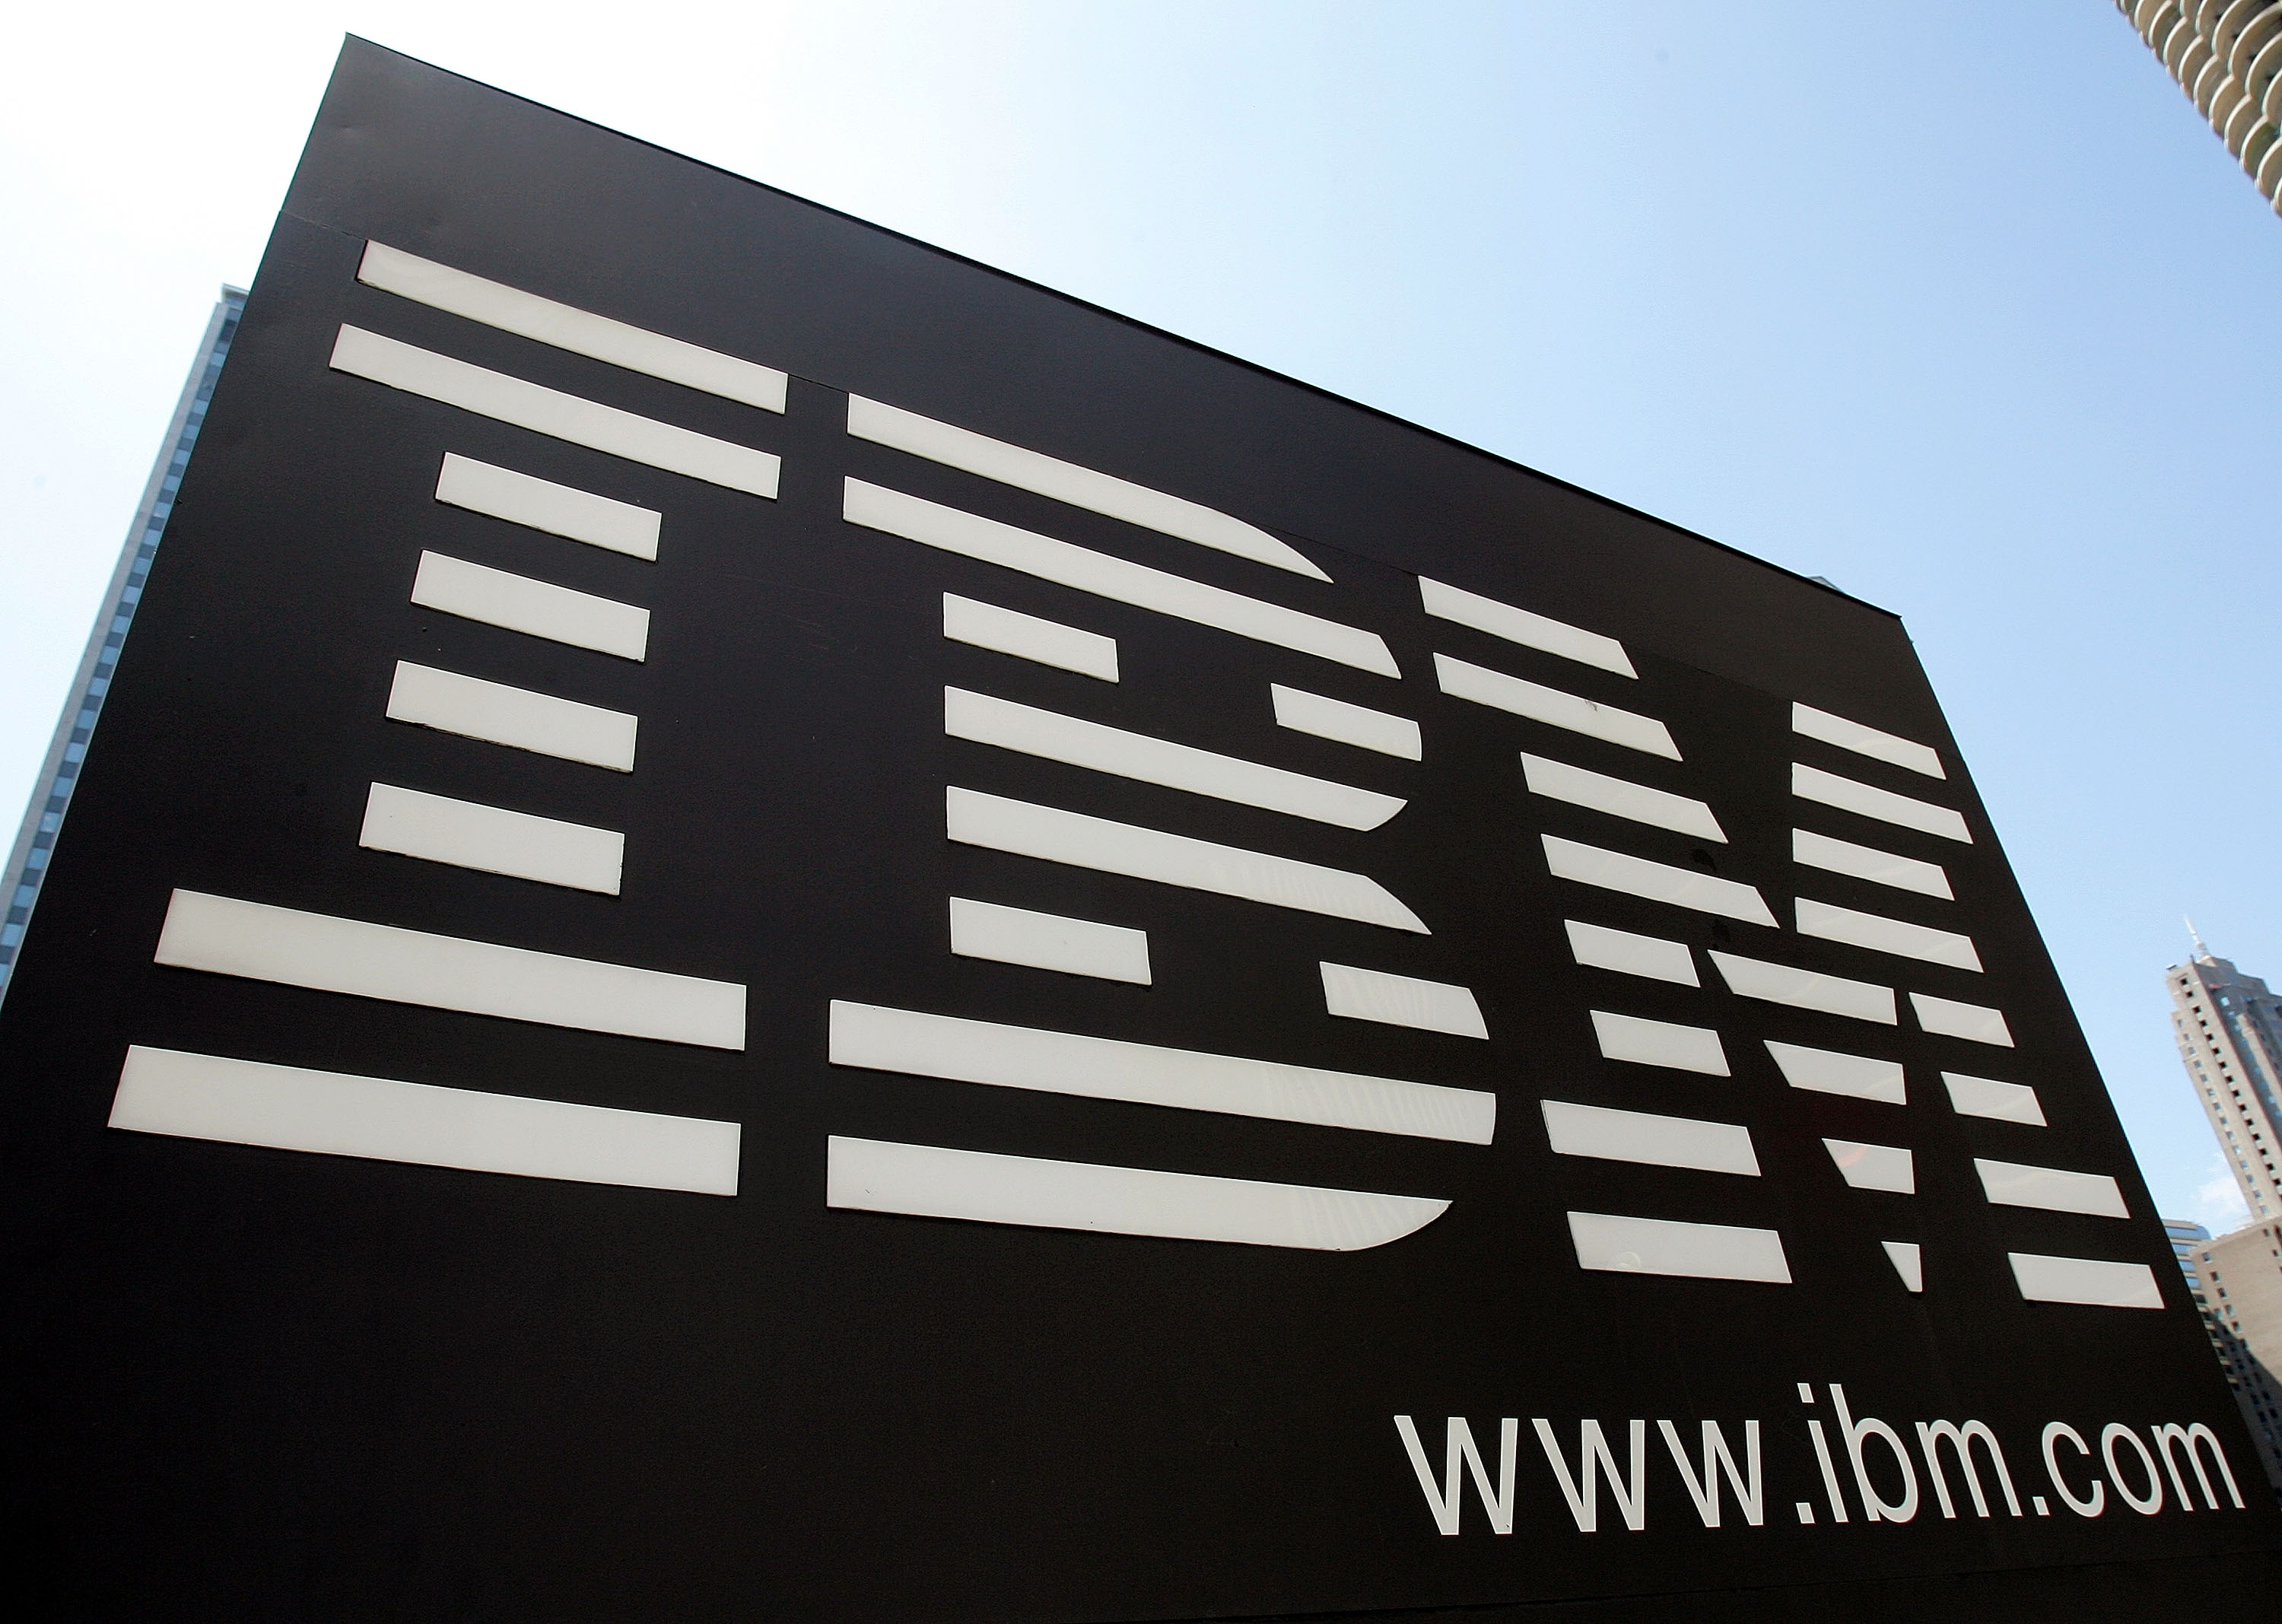 IBM is using the blockchain to speed up and simplify cross-border payments